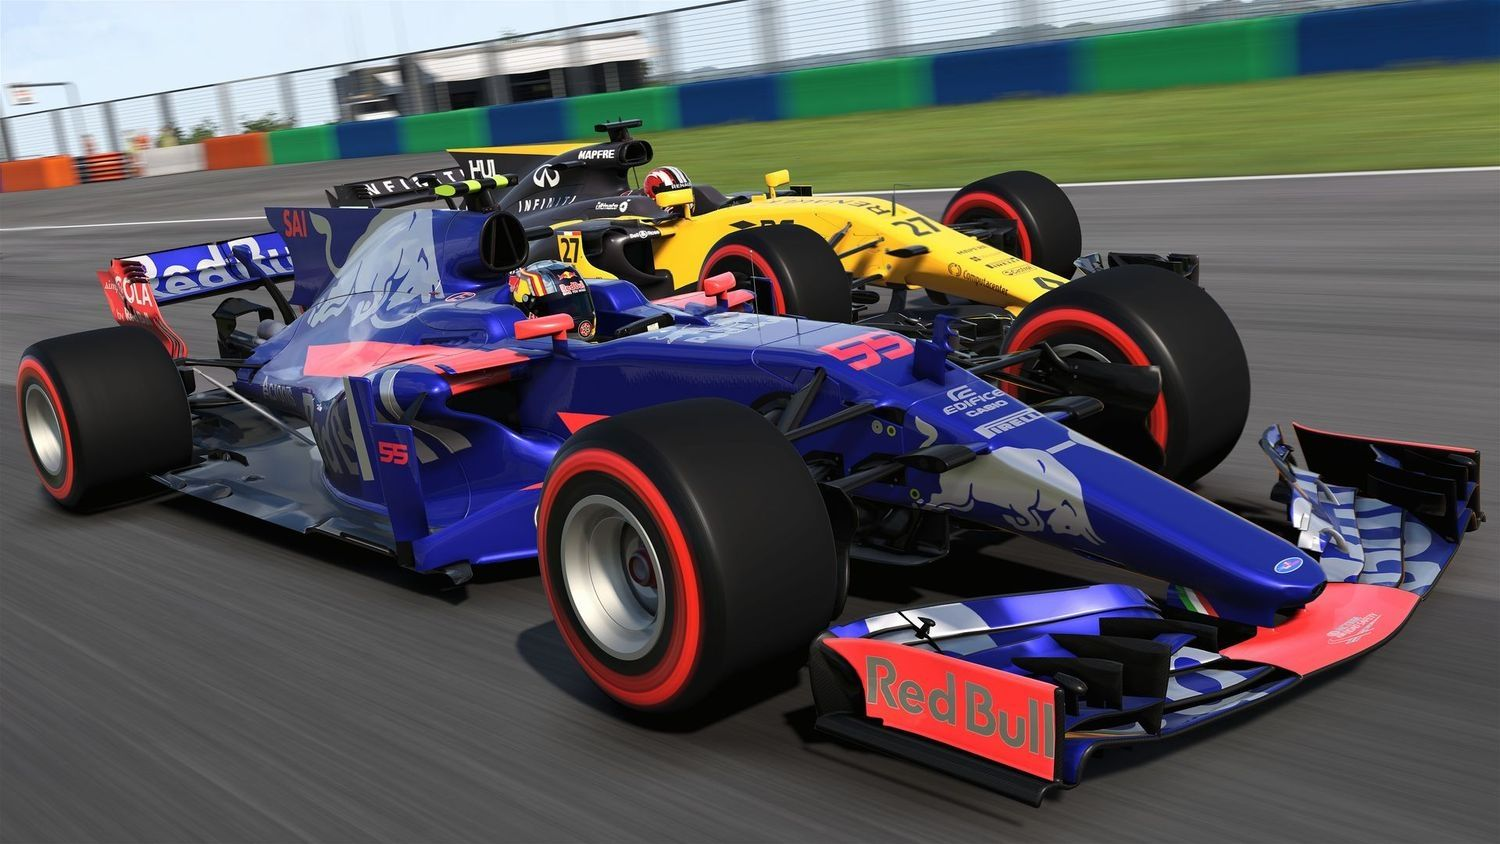 F1 2017 Special Edition (PC) - 11